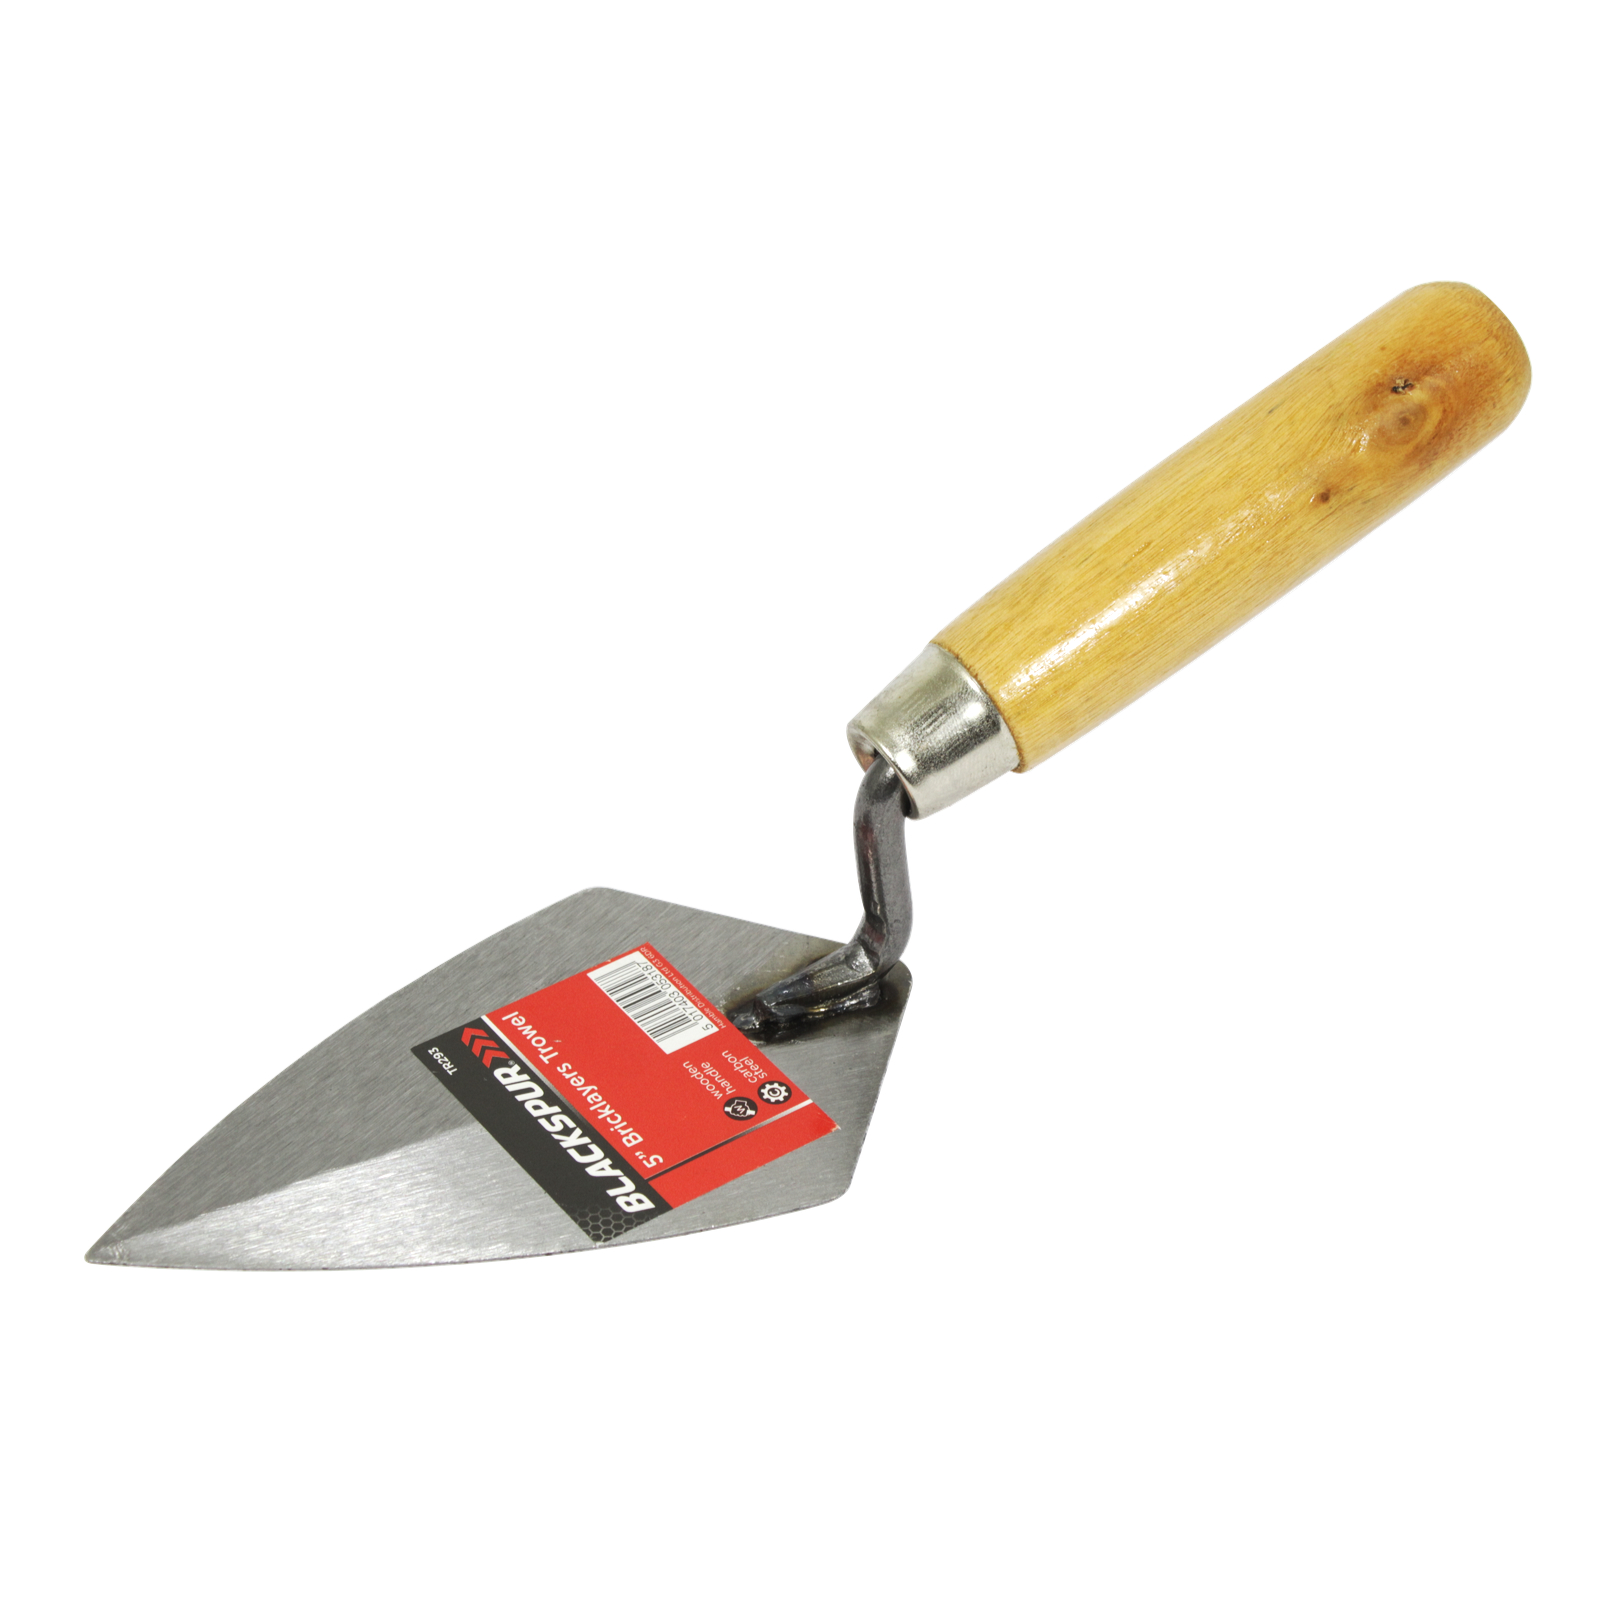 BLACKSPUR BRICKLAYERS TROWEL 5